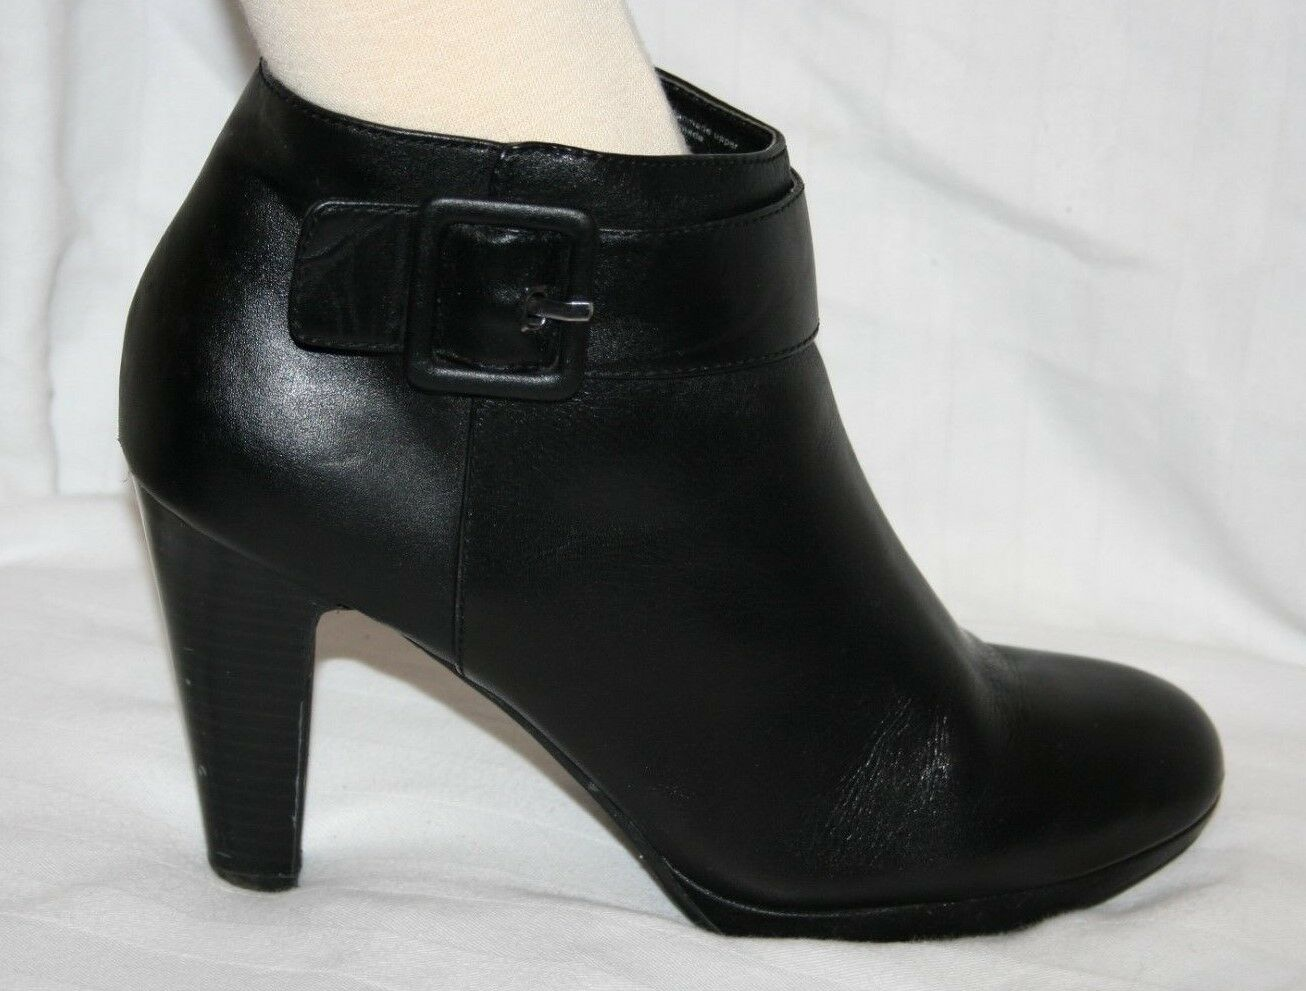 GIANNI BINI CHUNK HEEL ANKLE BOOT BLACK BOOTIES LEATHER ZIP UP SLIP ON 9.5